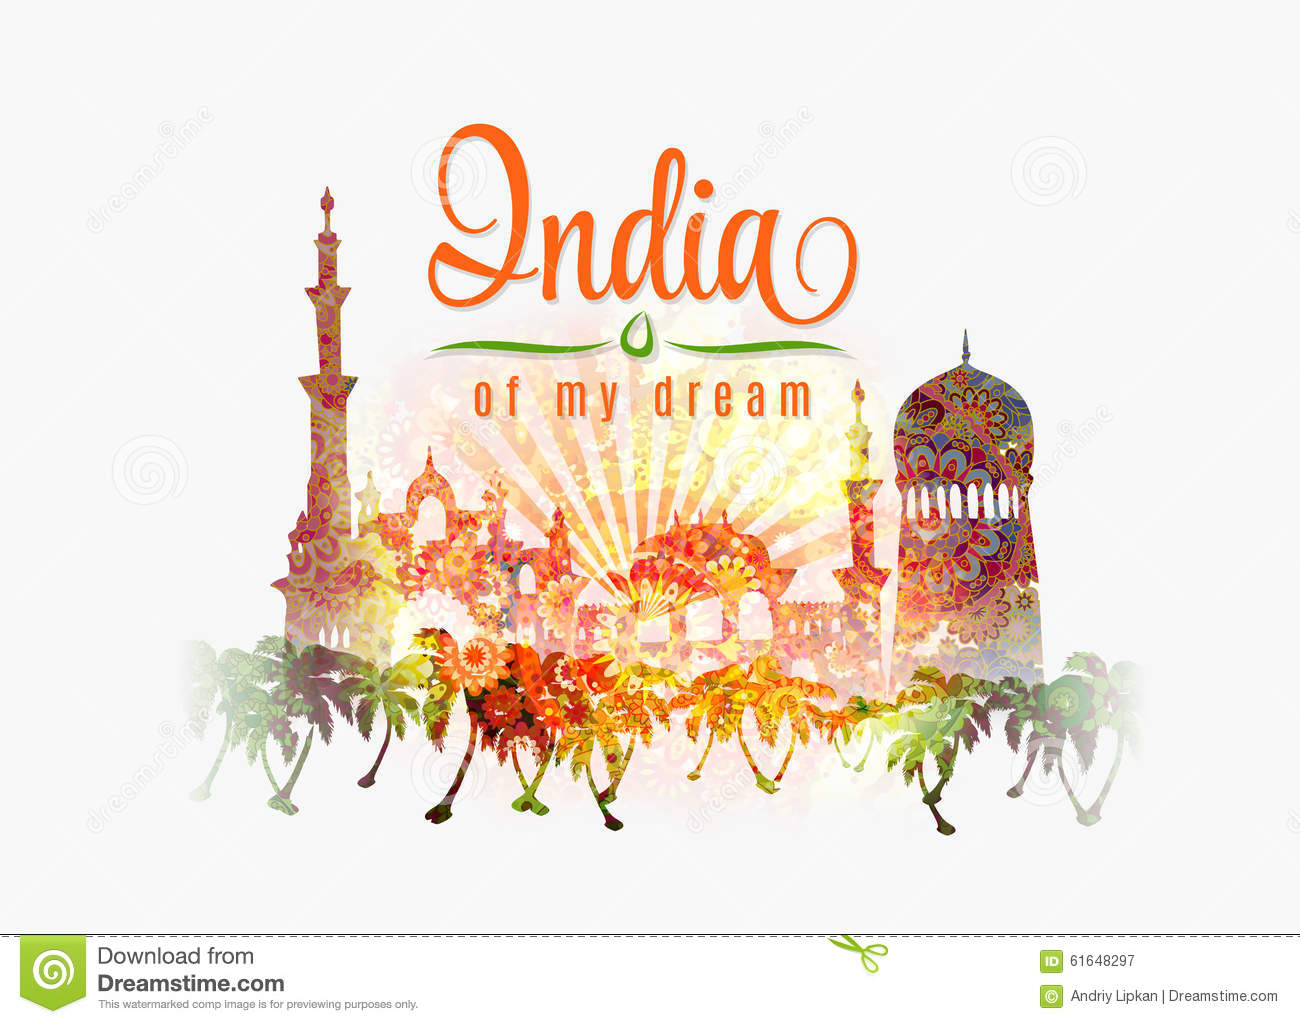 my dream nation india Essay writing competition on my dream city  smart india, i take and feel  here i enclose my essay paper for essay writing competition on the theme of my dream.